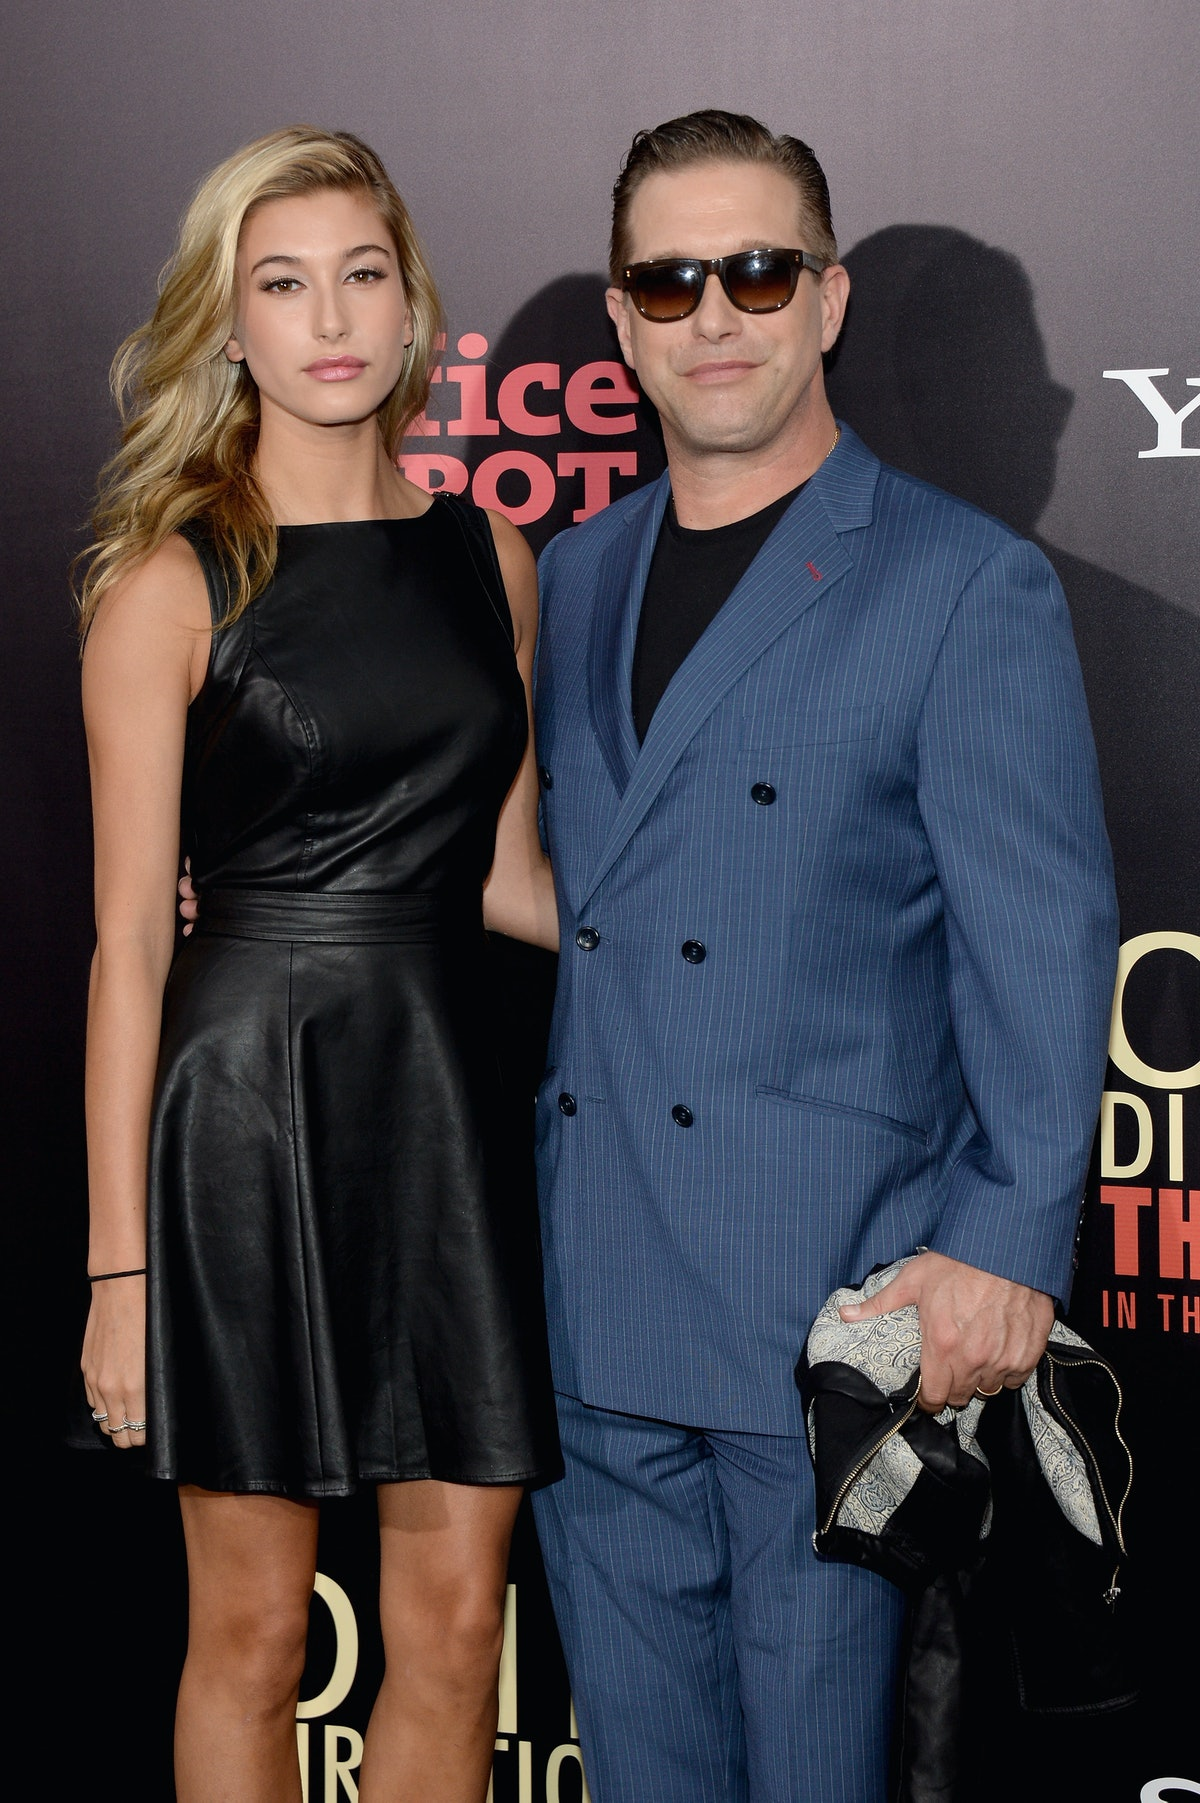 """NEW YORK, NY - AUGUST 26: Hailey Rhode Baldwin (L) and Stephen Baldwin attend the New York premiere of """"One Direction: This Is Us"""" at the Ziegfeld Theater on August 26, 2013 in New York City.  (Photo by Jamie McCarthy/Getty Images)"""